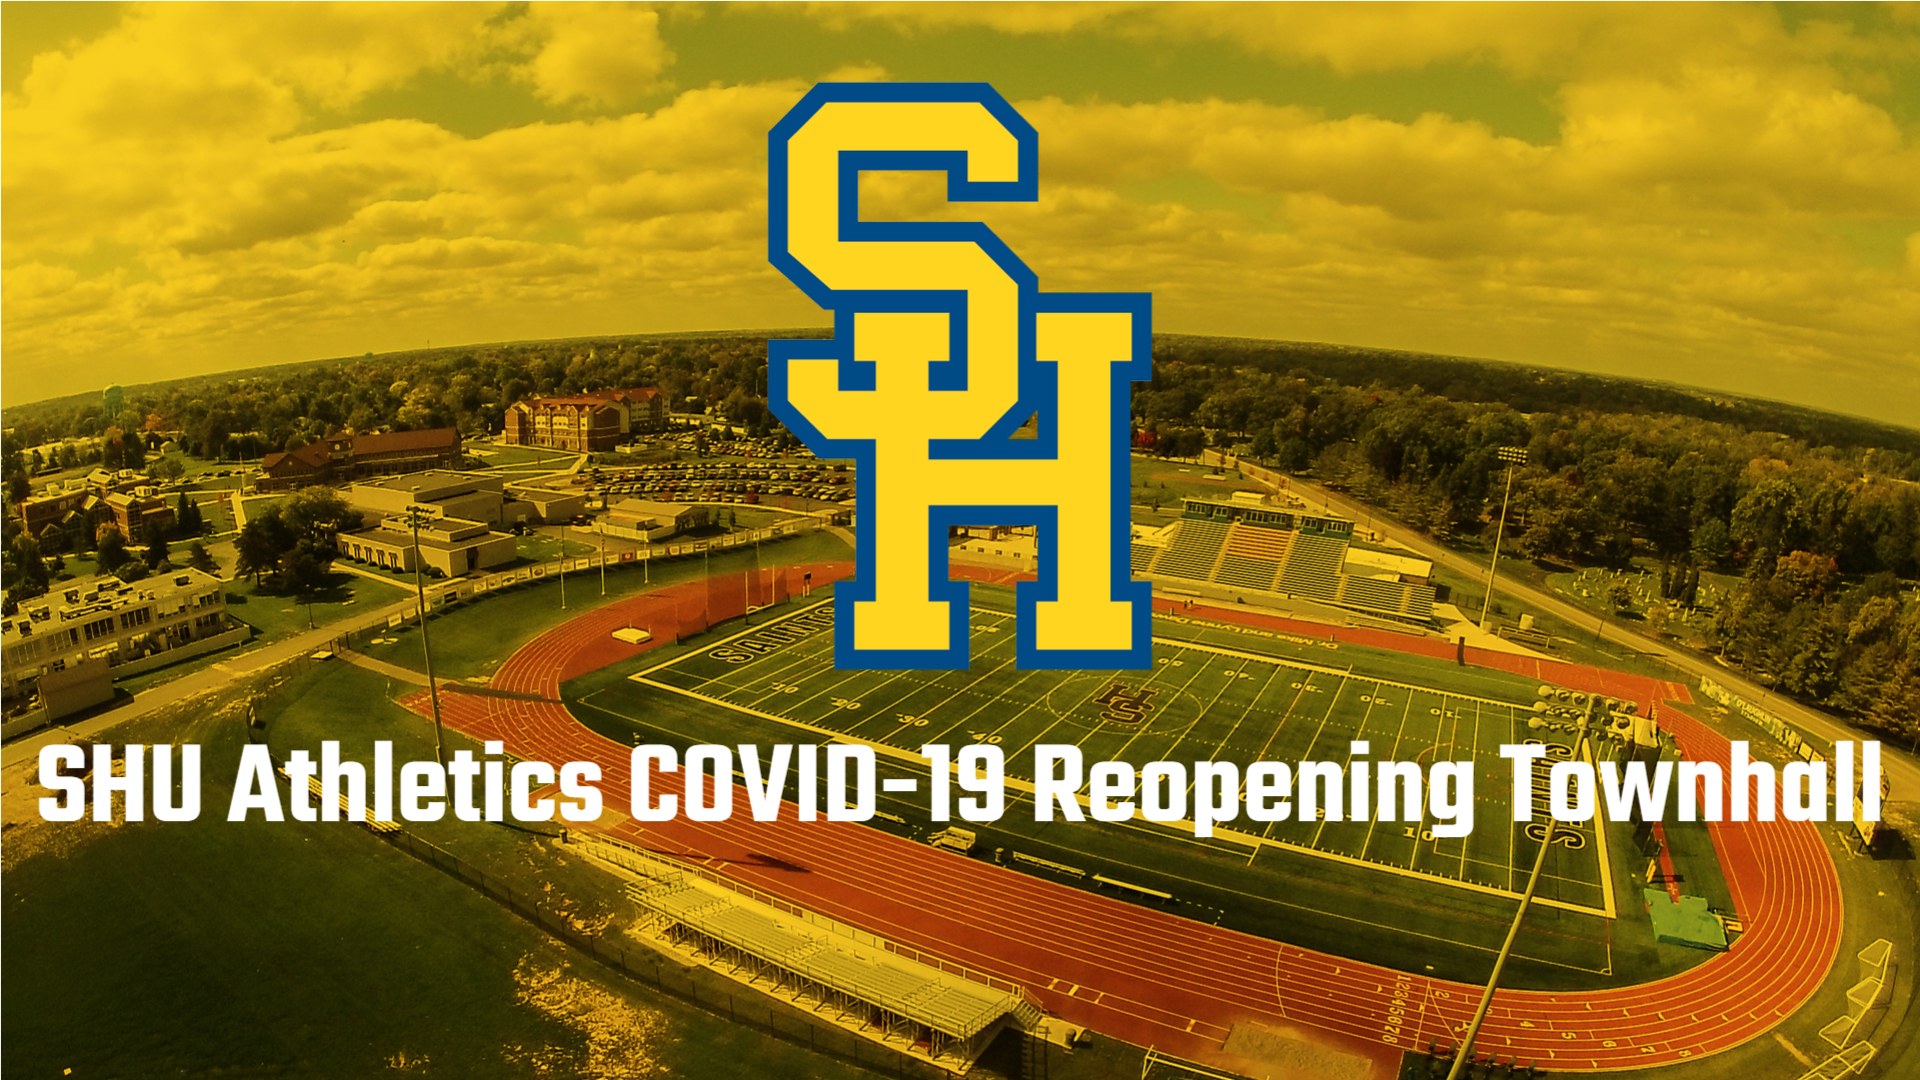 Siena Heights Athletics Hosting Town Hall Meeting to Address COVID-19 Reopening Plan